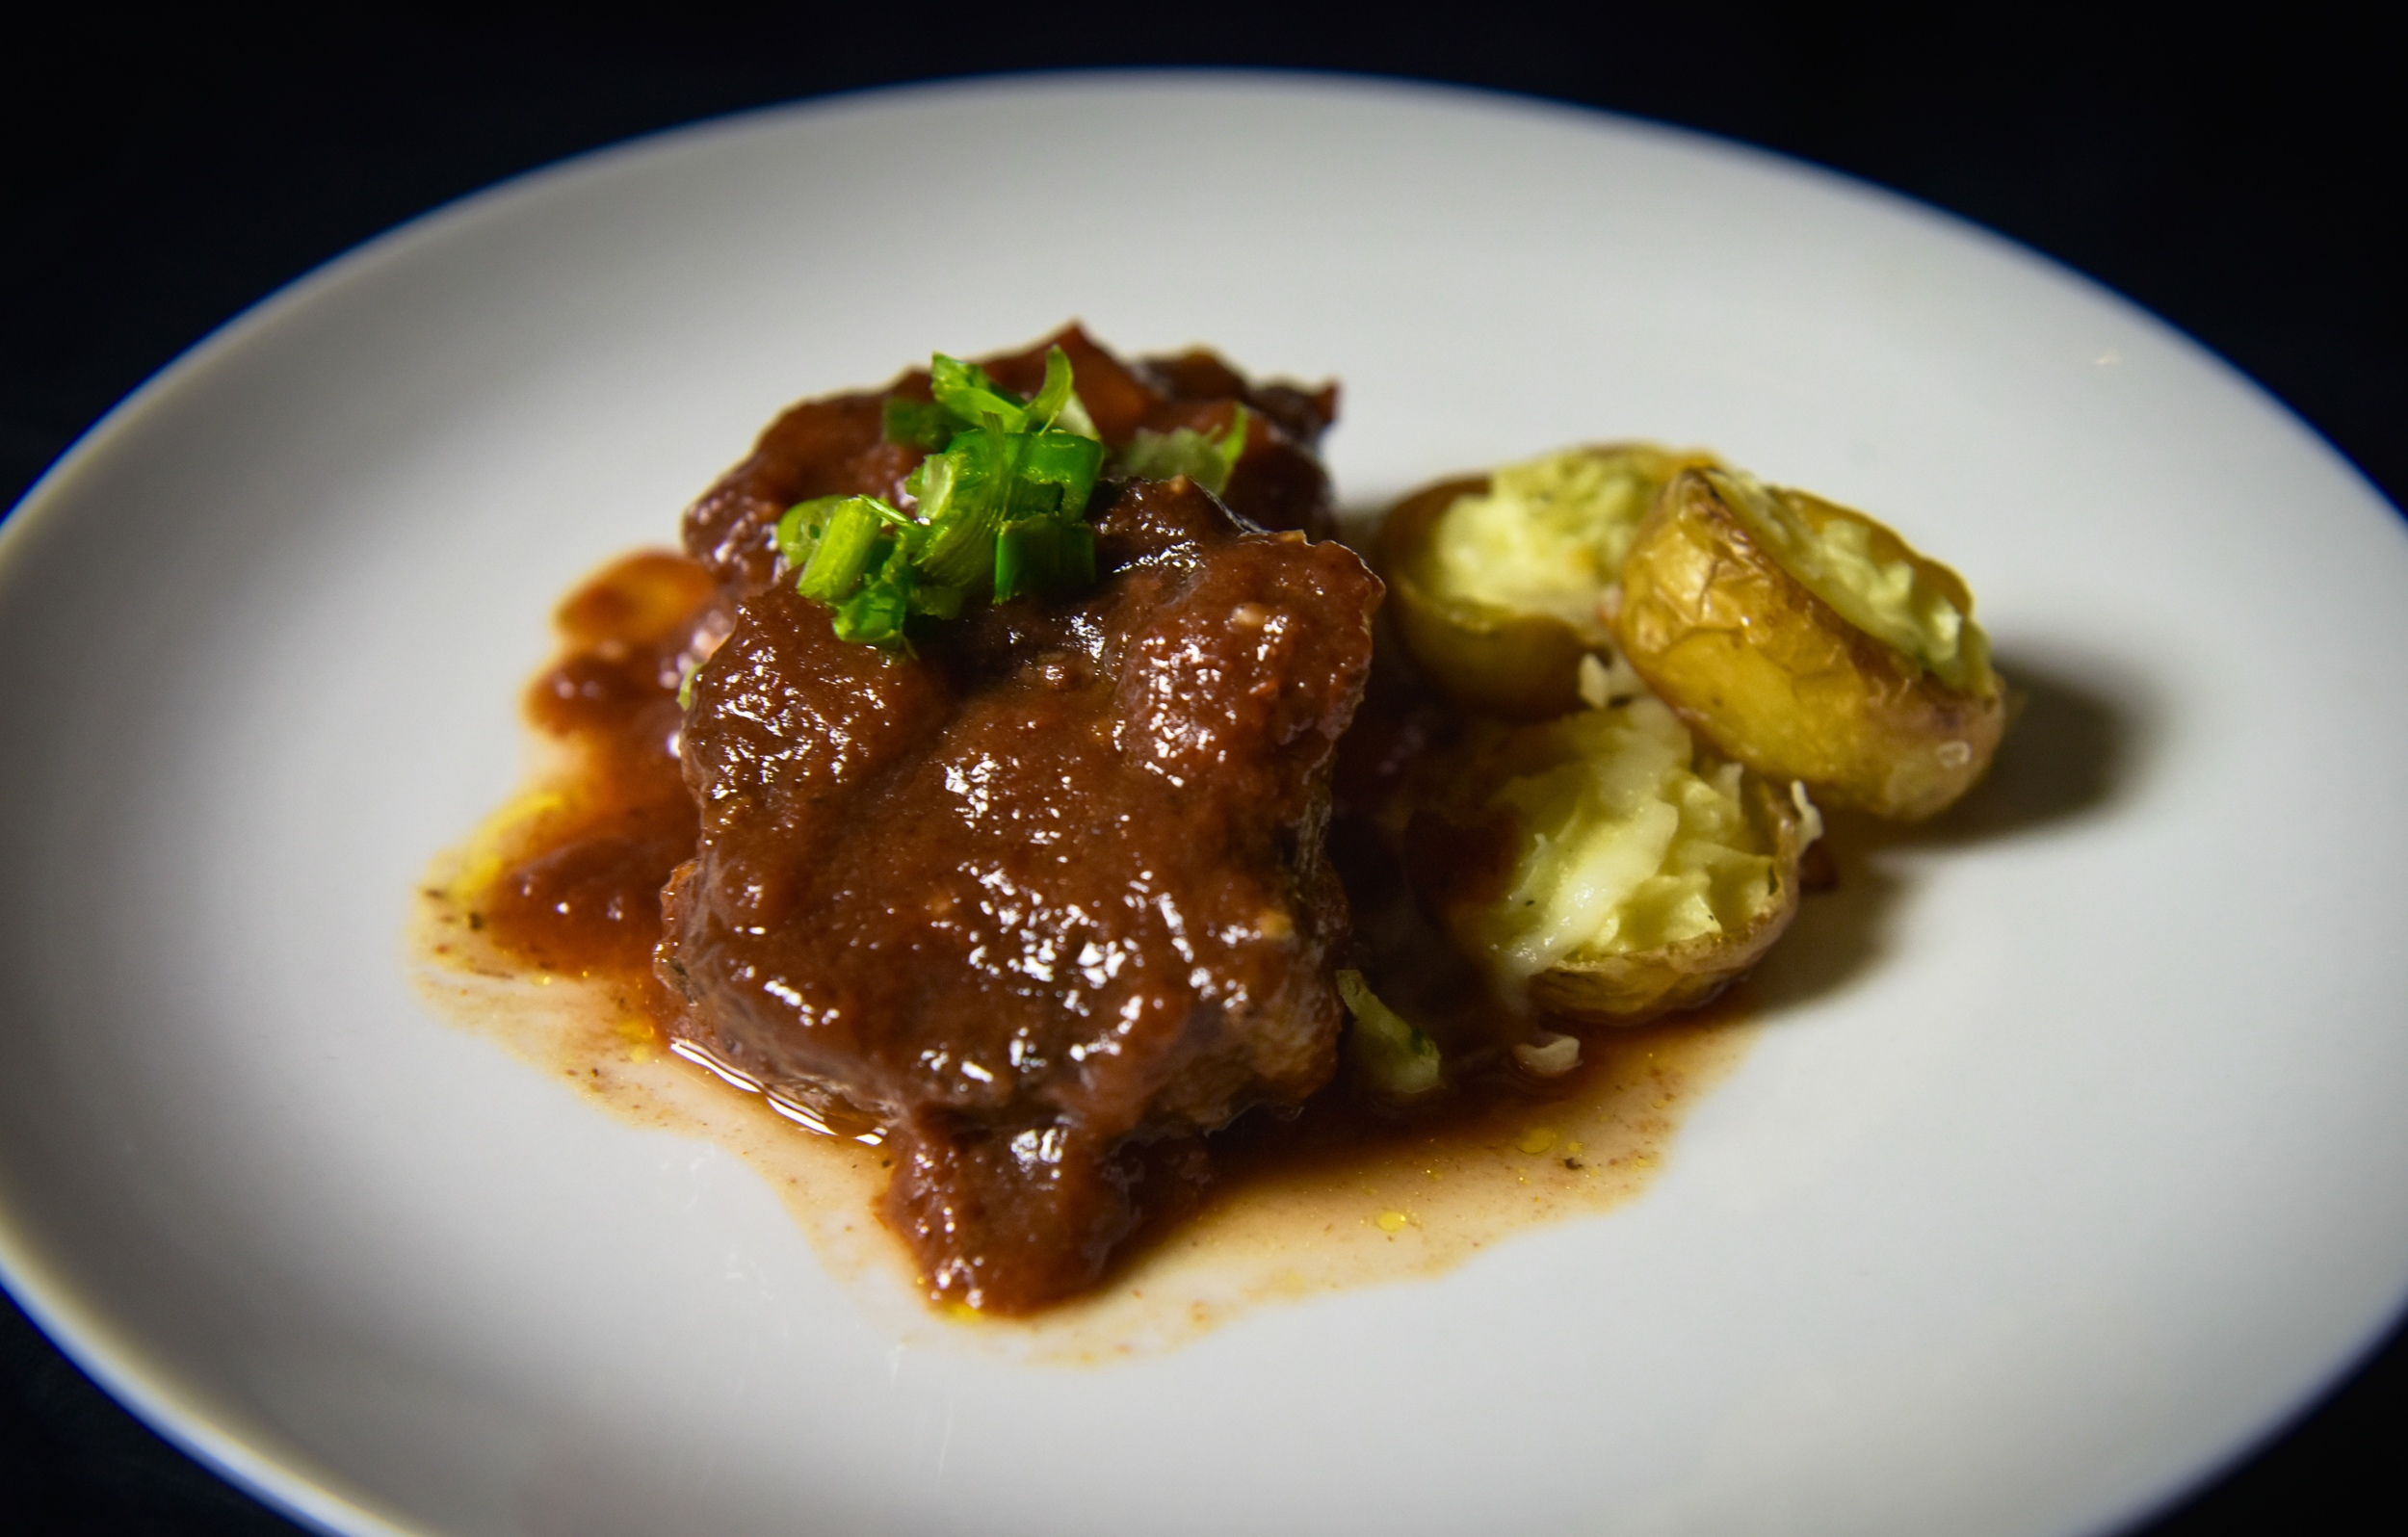 Slow-braised Red Wine Chuck with Twice Baked Mini Potatoes